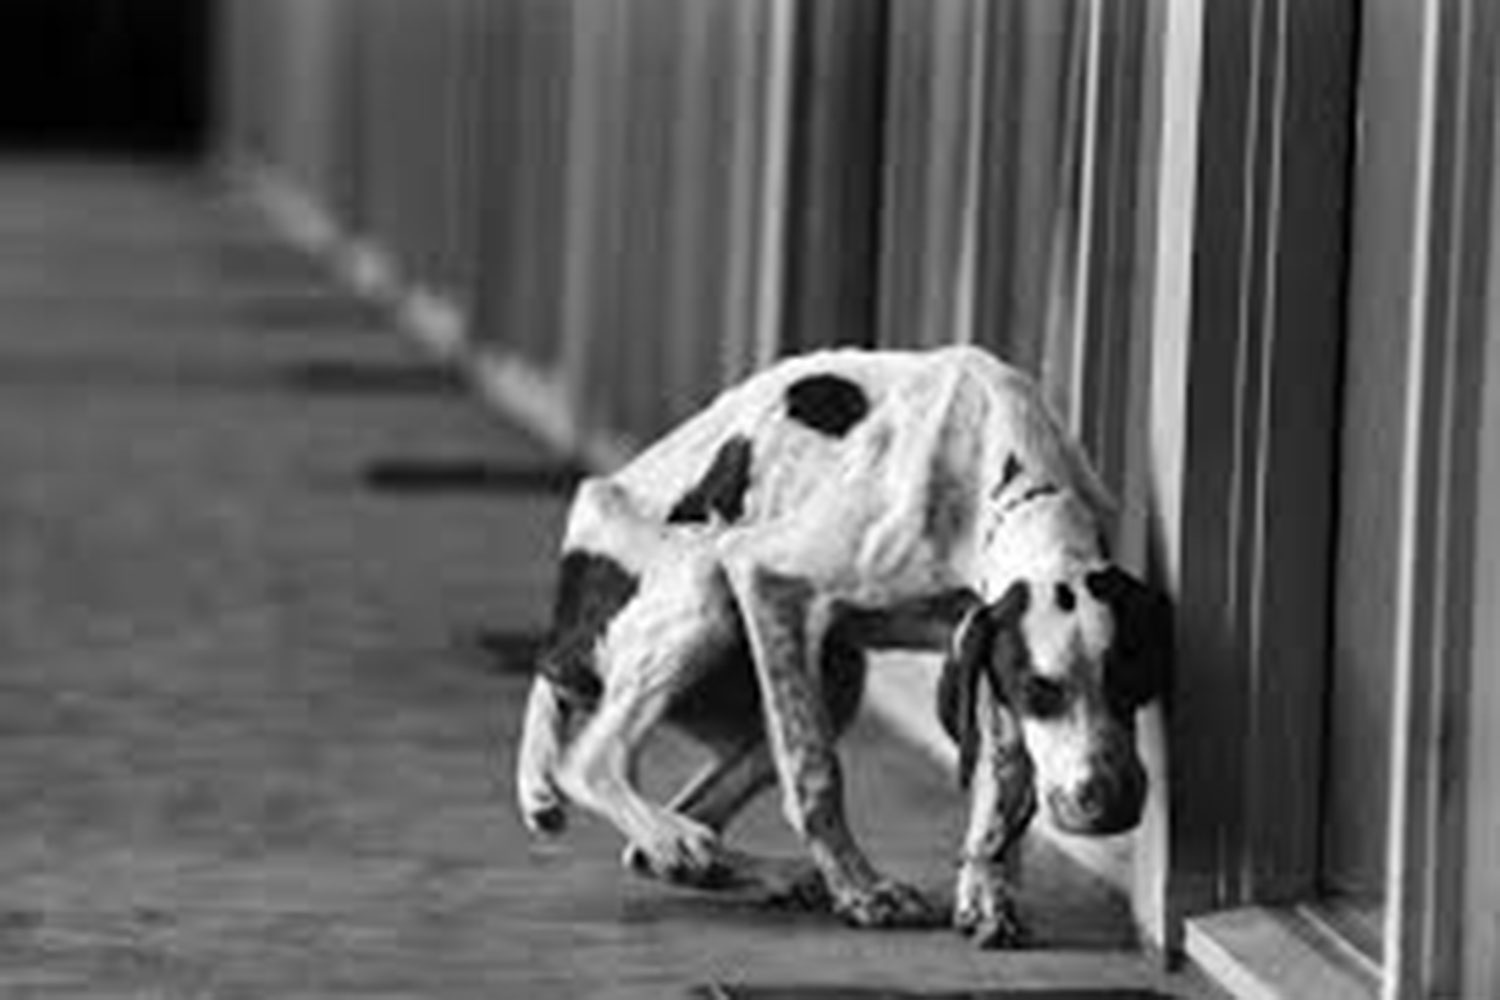 An abandoned dog travels the streets alone. He was left behind by his owners to face the world with no guidance.